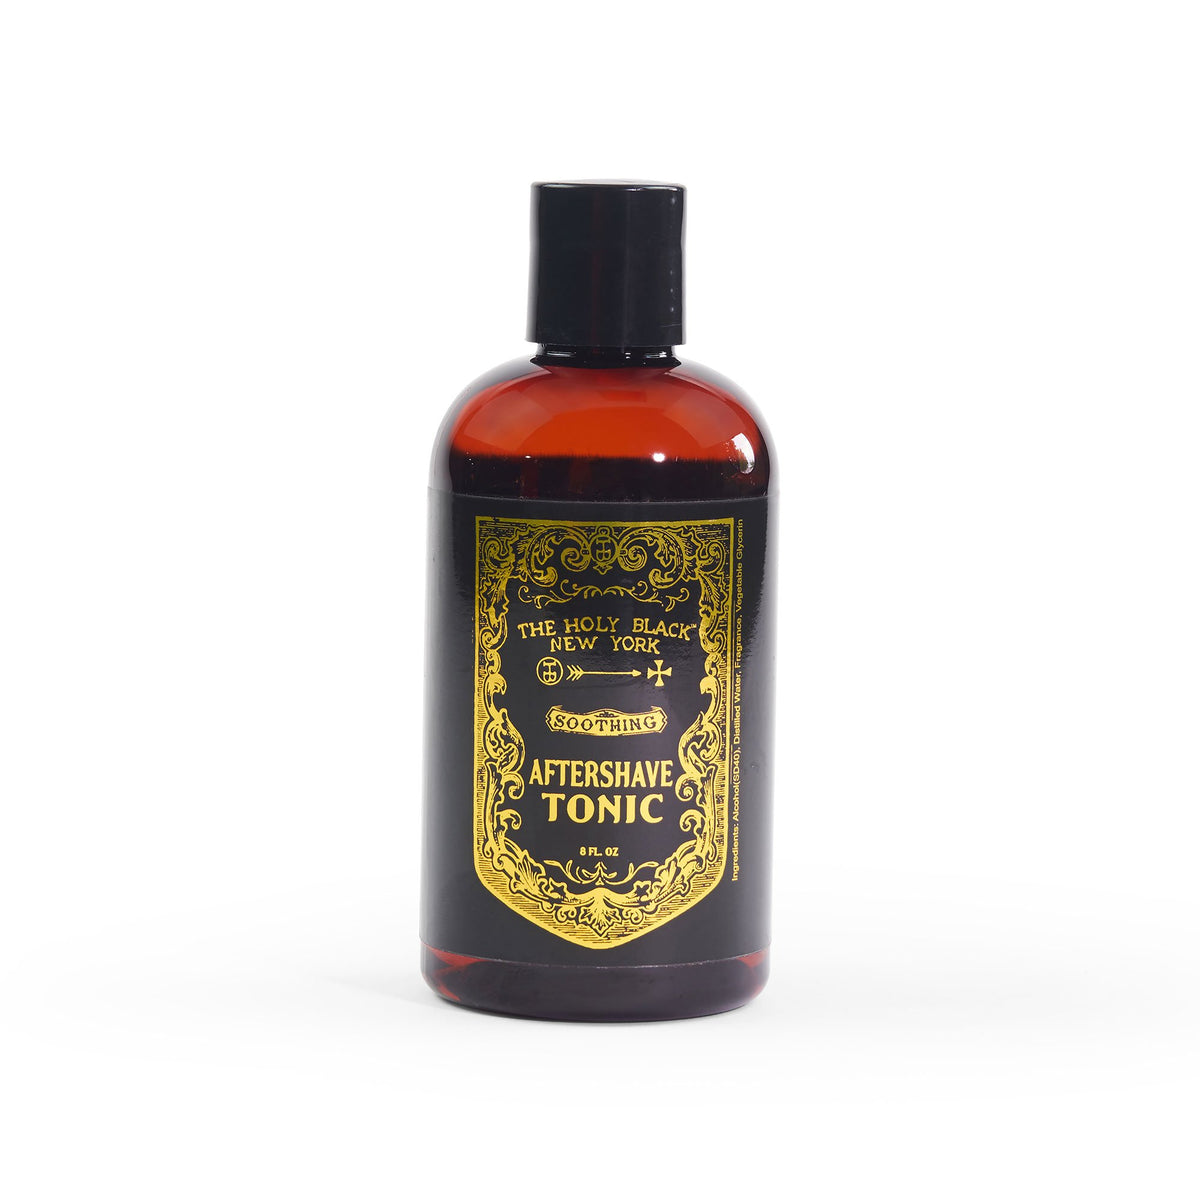 Aftershave Tonic